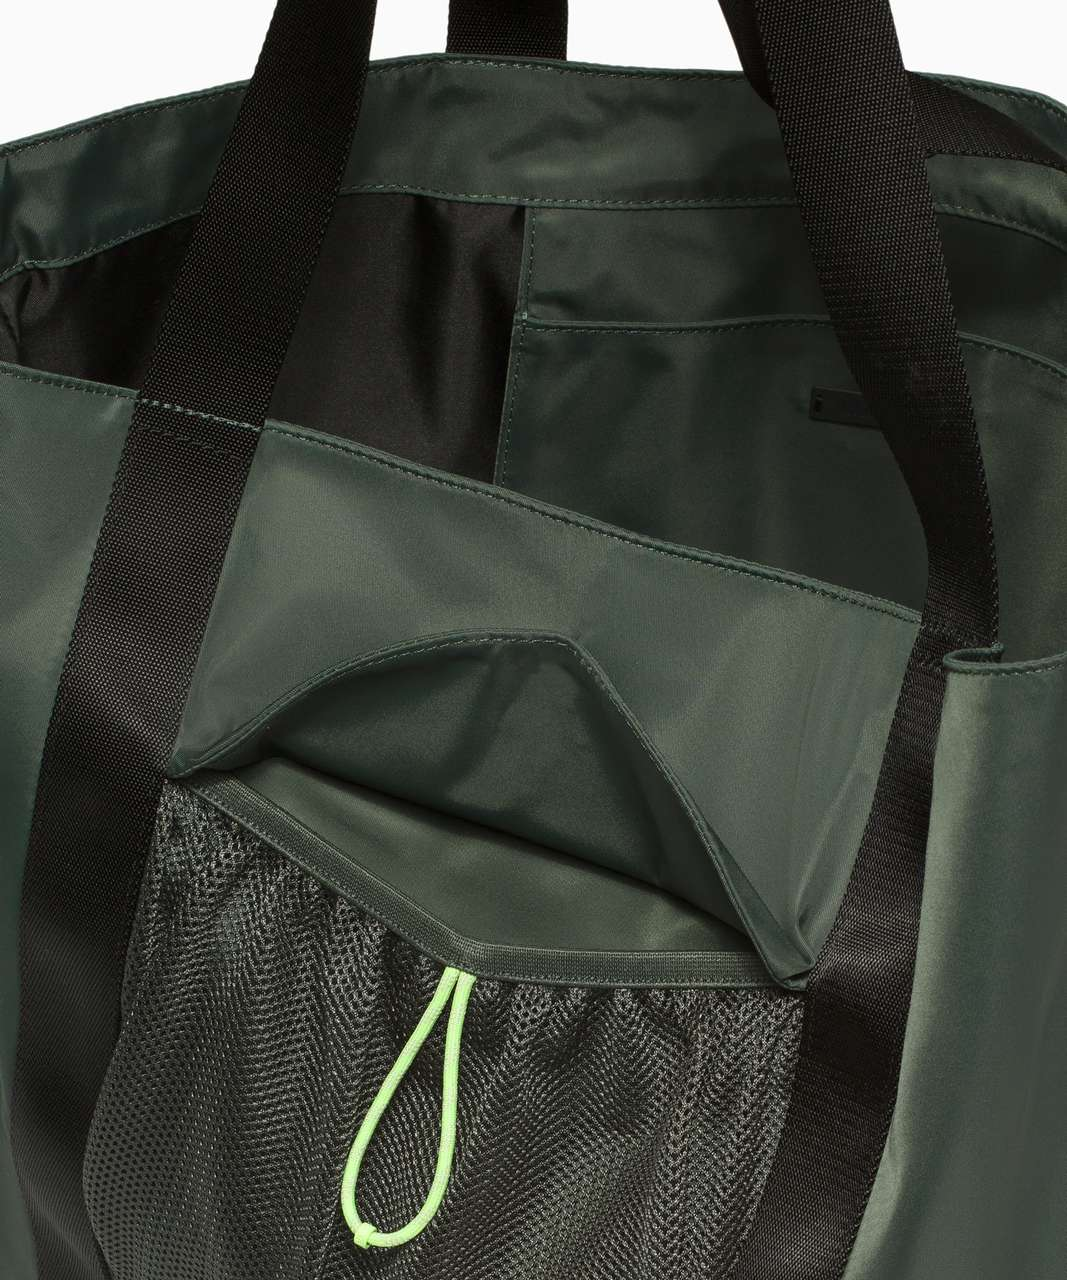 Lululemon Take It On Tote *24L - Smoked Spruce / Neo Mint